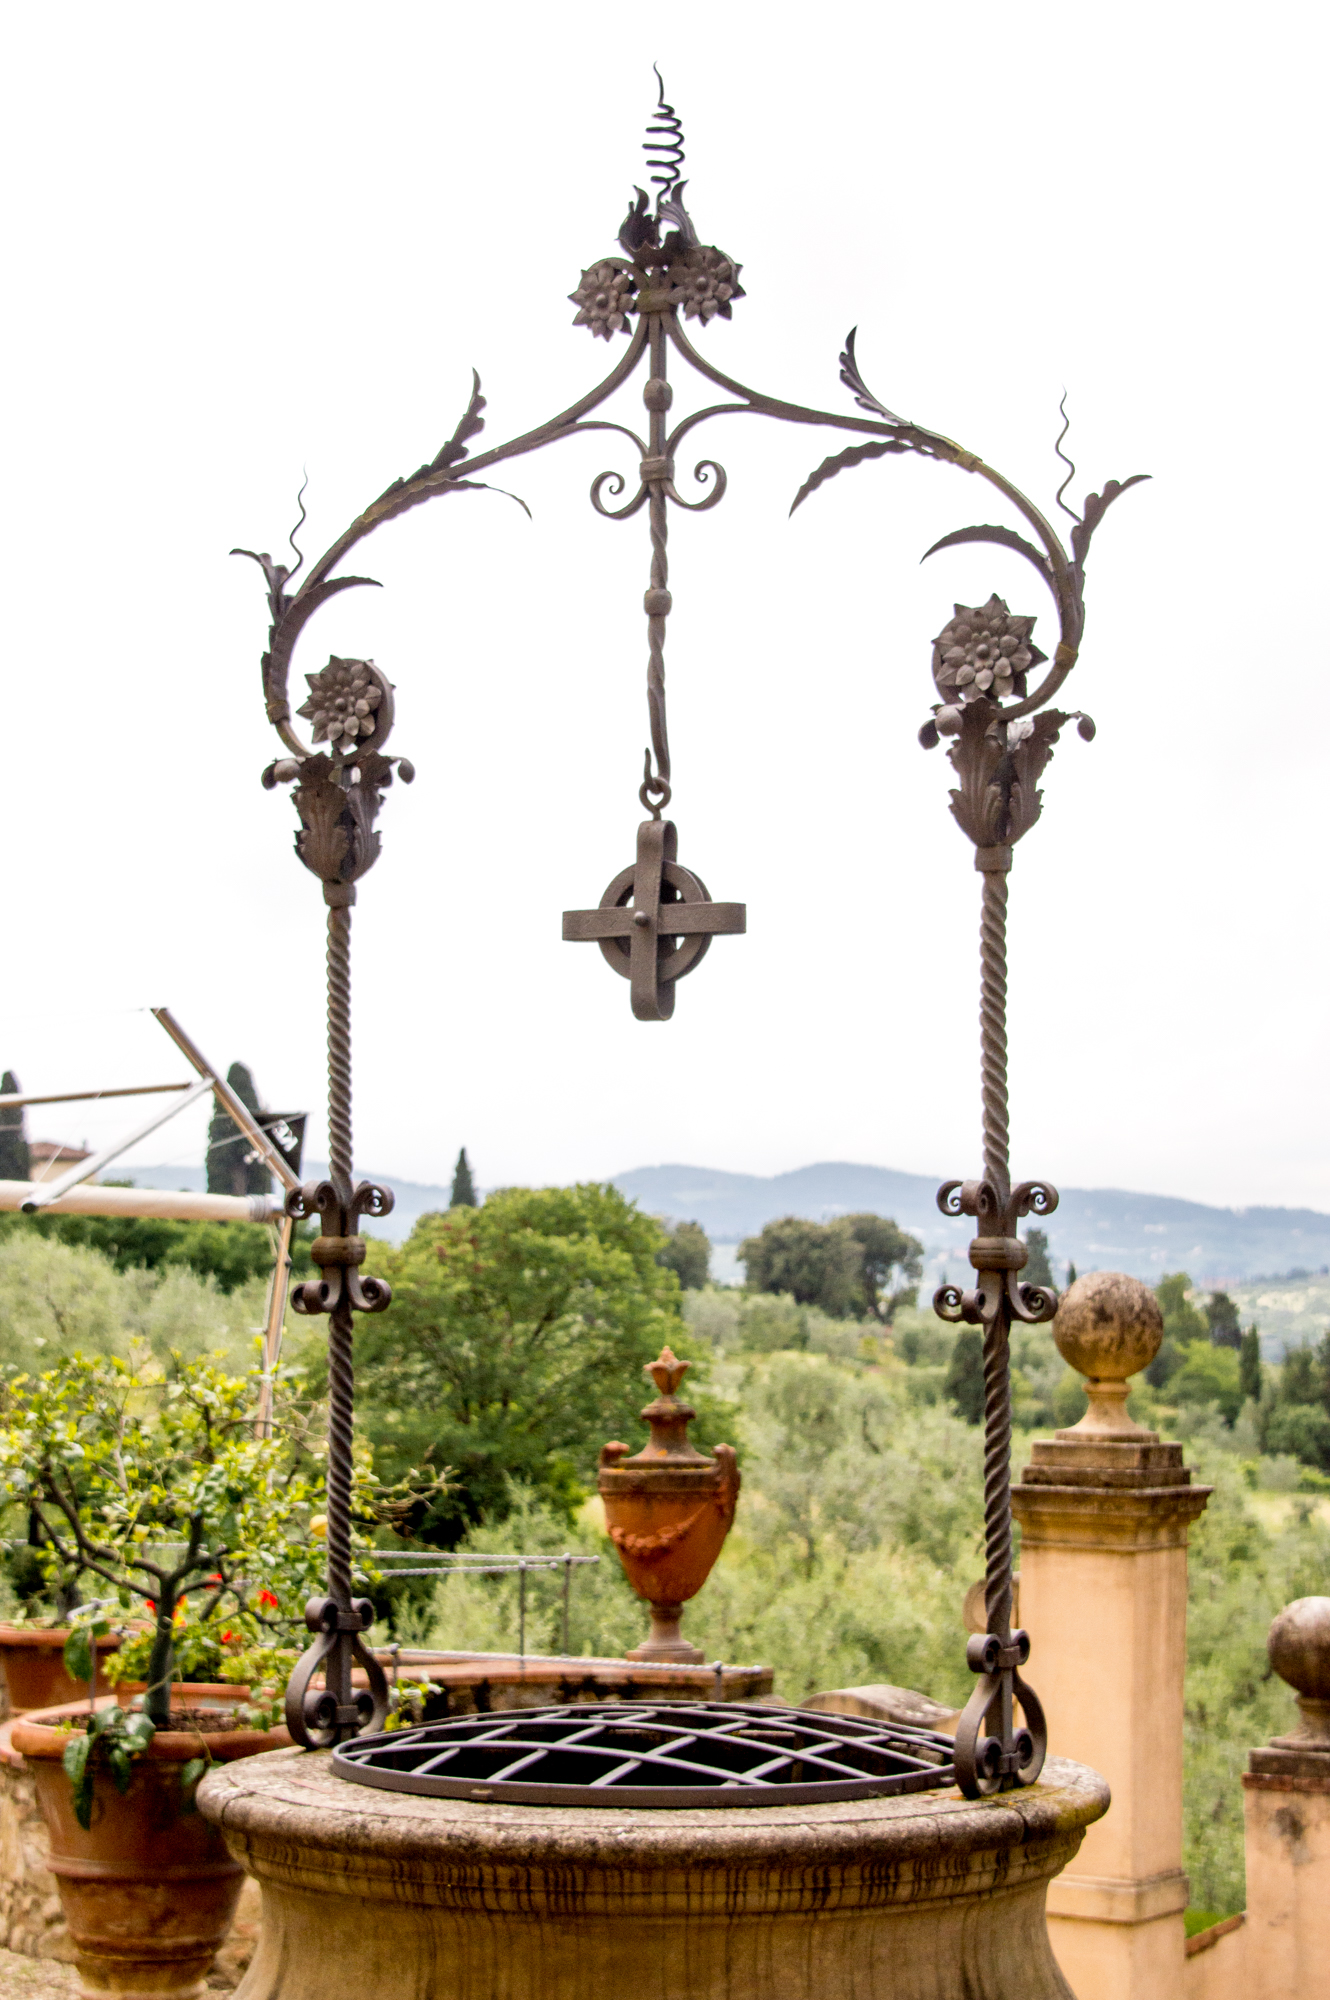 Best views of Tuscany